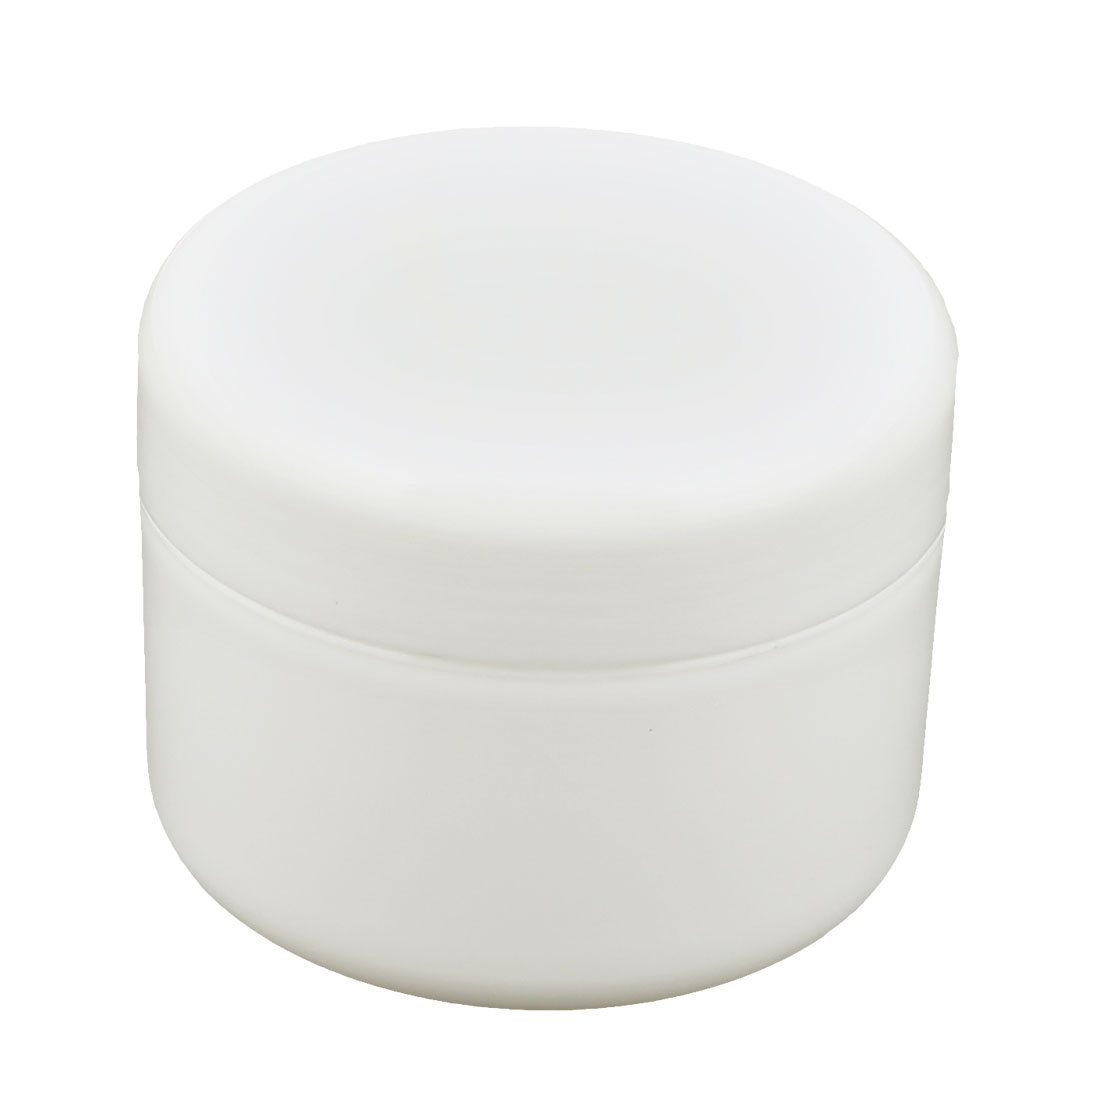 UXCELL Women Plastic Makeup Cosmetic Empty Jar Pot Face Cream Skin Lotion Moisturizer Bottle Container 250G White